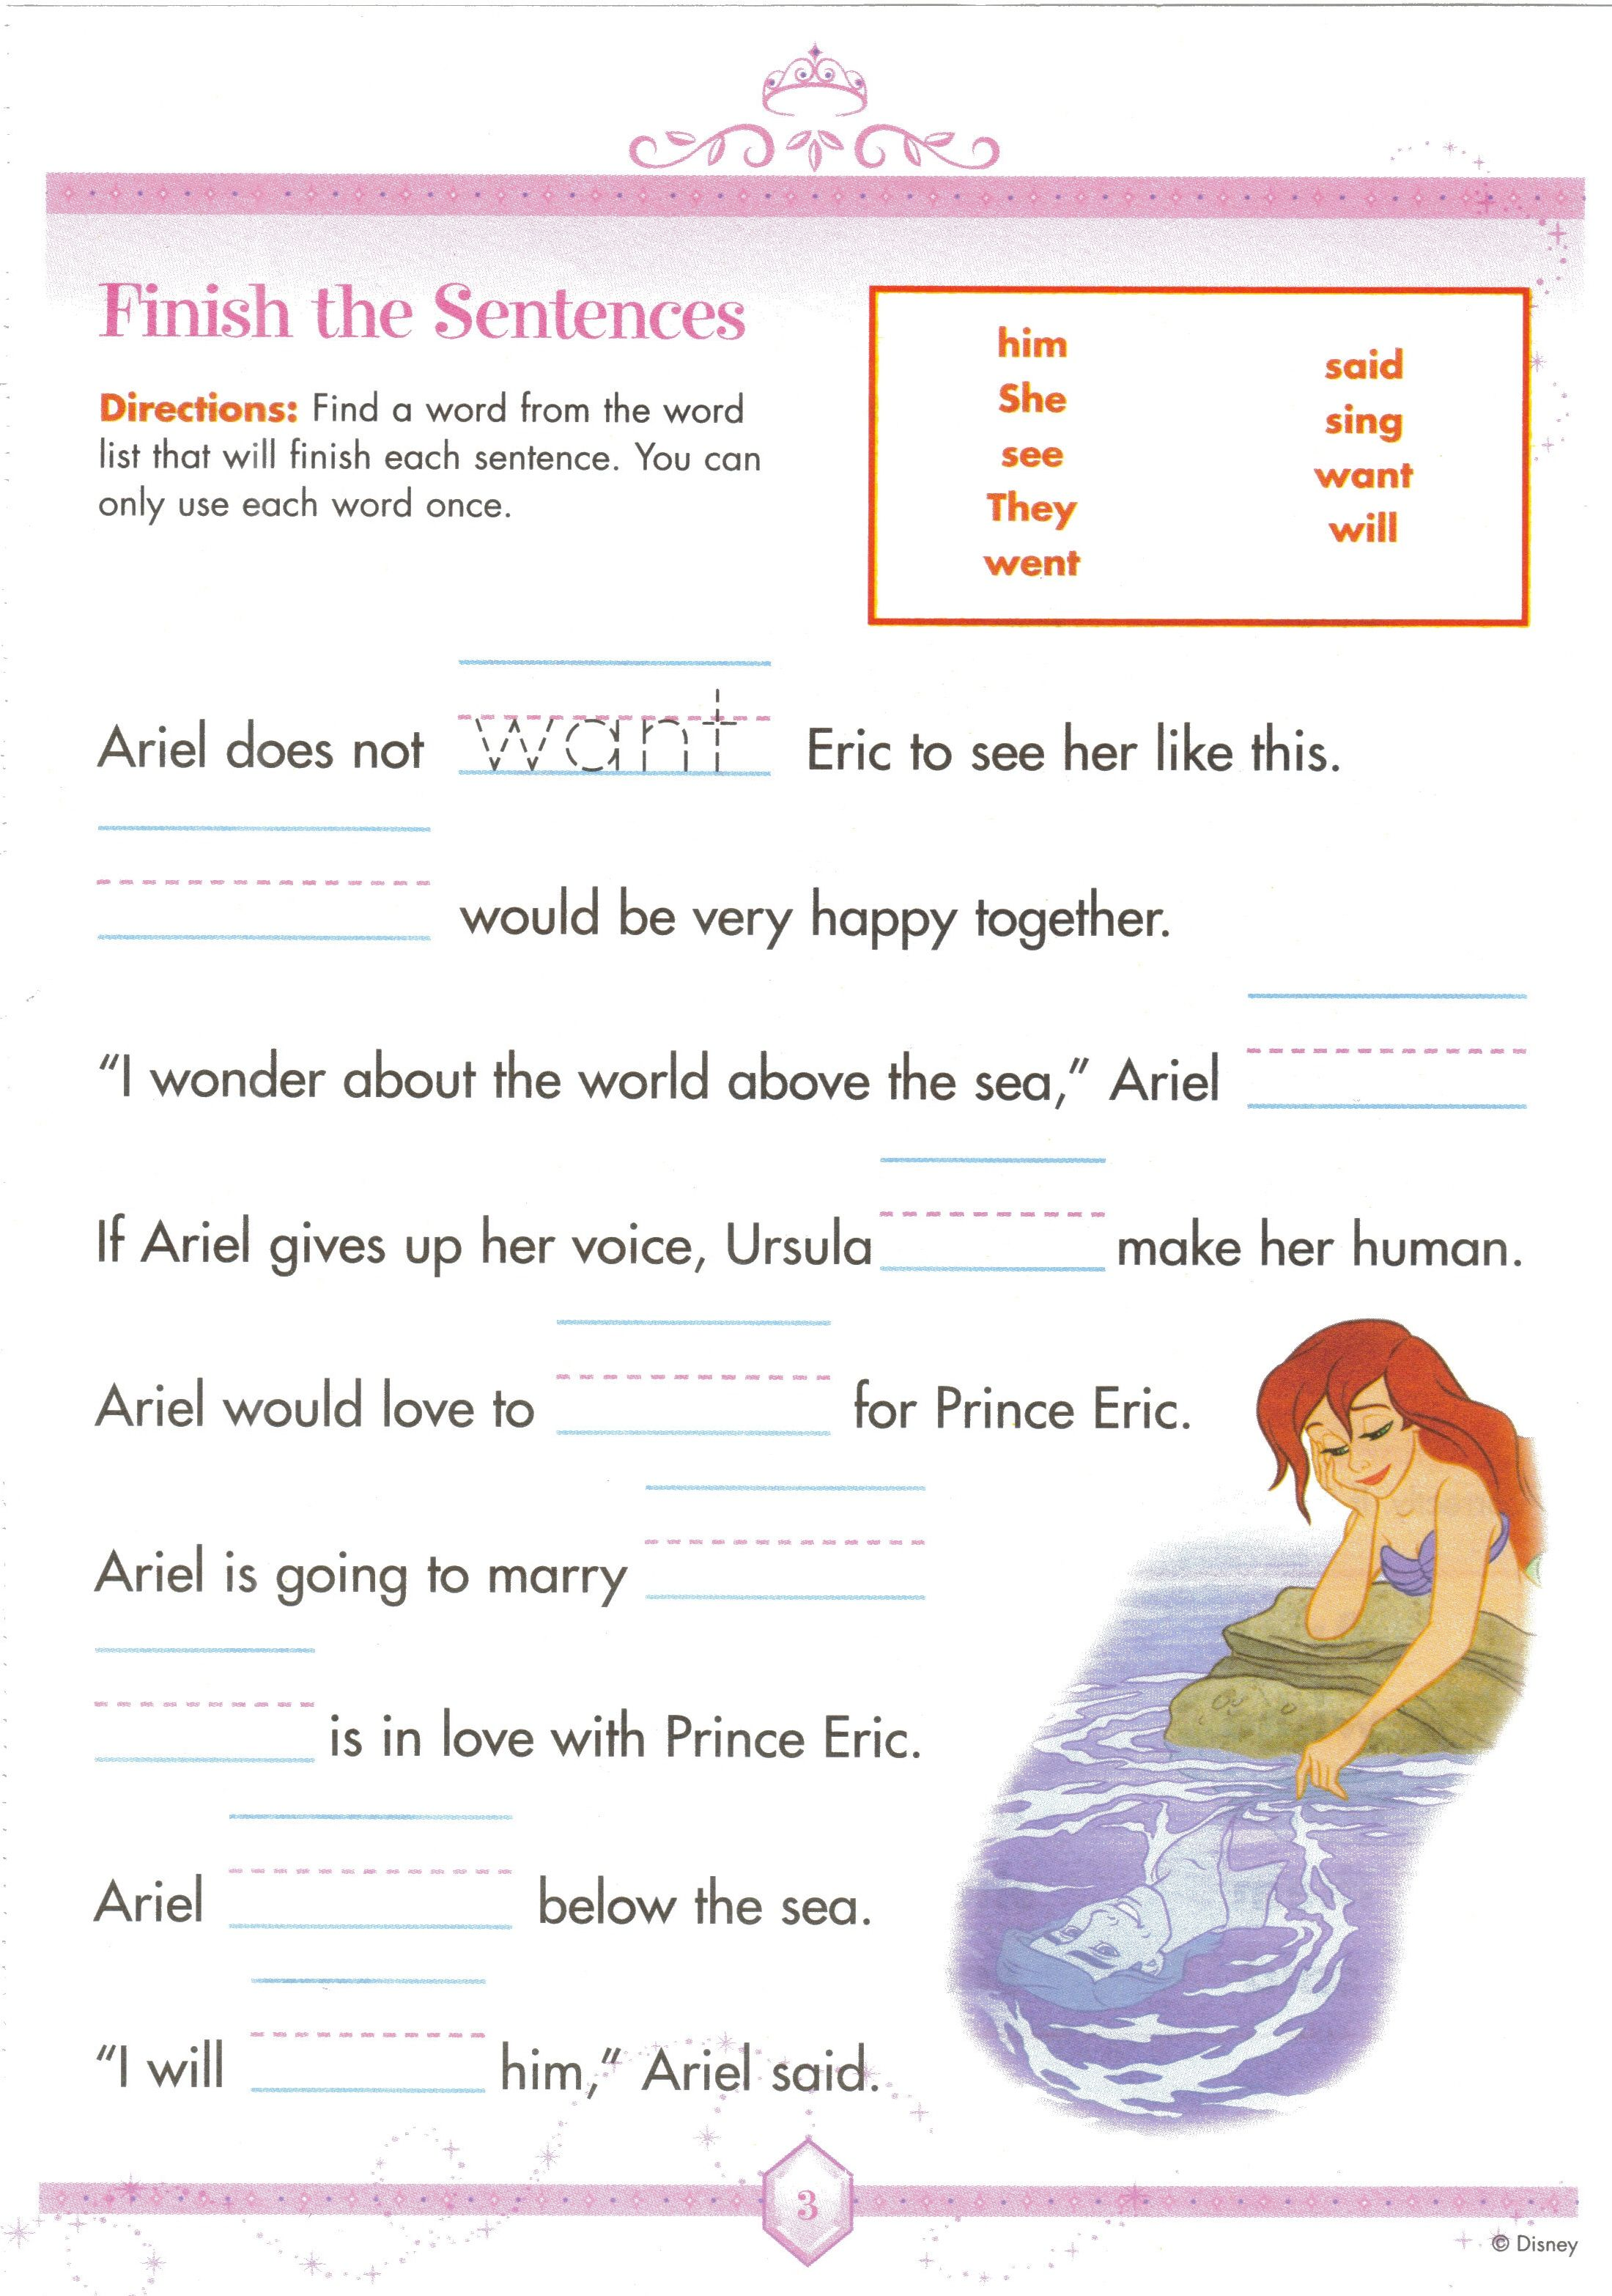 Proatmealus  Wonderful  Images About Worksheets On Pinterest  Fun Facts For Kids  With Fascinating  Images About Worksheets On Pinterest  Fun Facts For Kids Earth Day Worksheets And Jungles With Nice Easily Confused Words Worksheet Also Archetype Worksheet In Addition Anatomy Of The Heart Worksheet And Zig Ziglar Goal Setting Worksheet As Well As  Multiplication Worksheet Additionally Classification Of Living Organisms Worksheet From Pinterestcom With Proatmealus  Fascinating  Images About Worksheets On Pinterest  Fun Facts For Kids  With Nice  Images About Worksheets On Pinterest  Fun Facts For Kids Earth Day Worksheets And Jungles And Wonderful Easily Confused Words Worksheet Also Archetype Worksheet In Addition Anatomy Of The Heart Worksheet From Pinterestcom